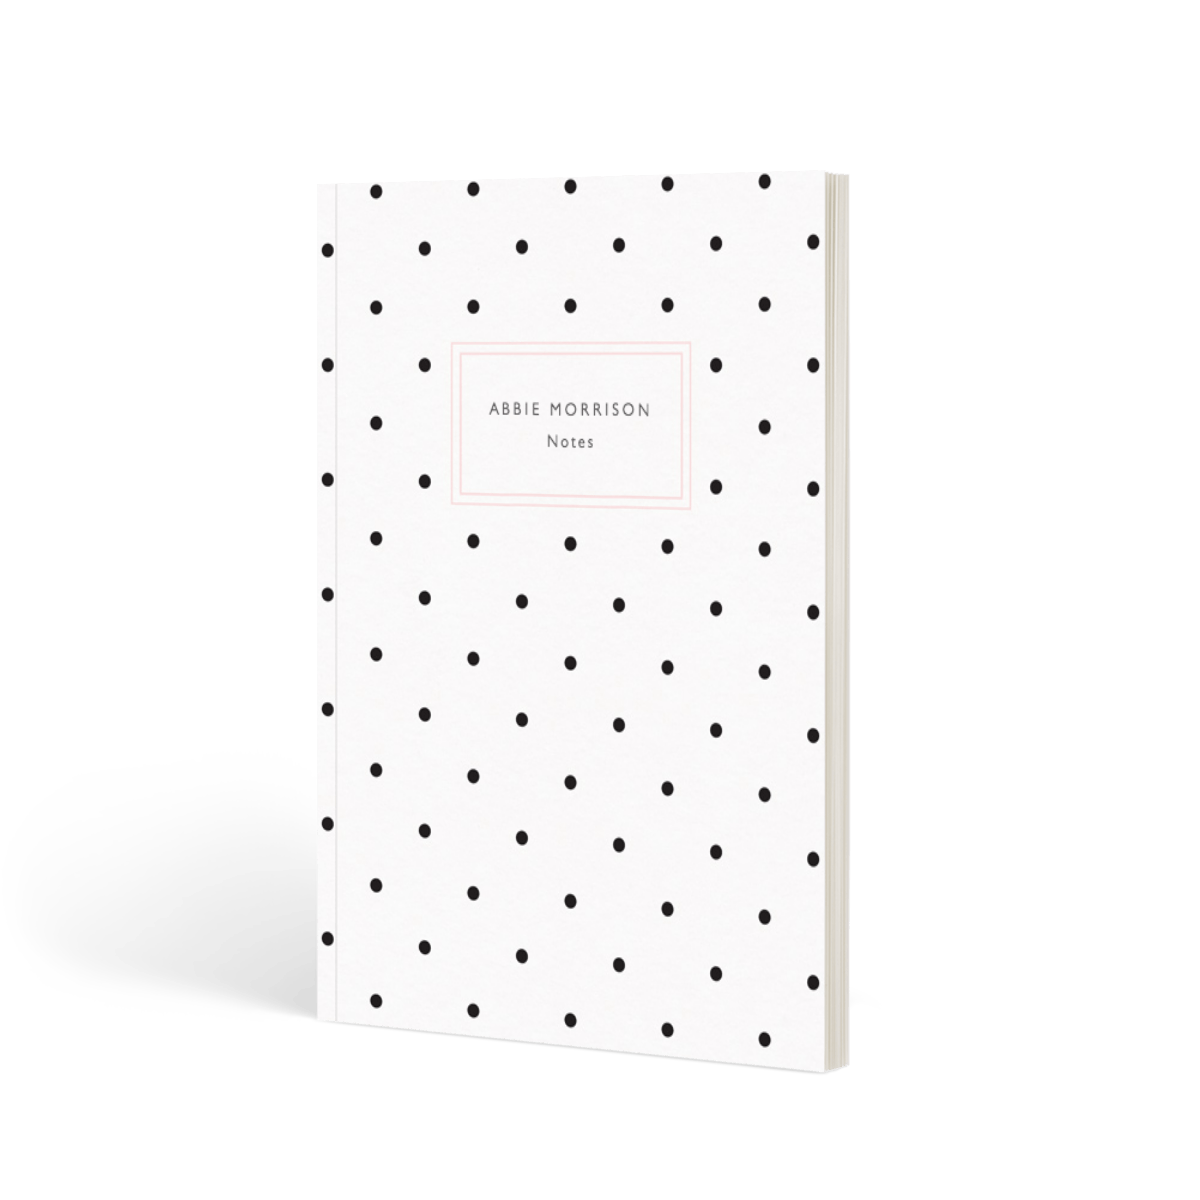 Https%3a%2f%2fwww.papier.com%2fproduct image%2f56498%2f6%2fpolka dots 13570 front 1567516965.png?ixlib=rb 1.1